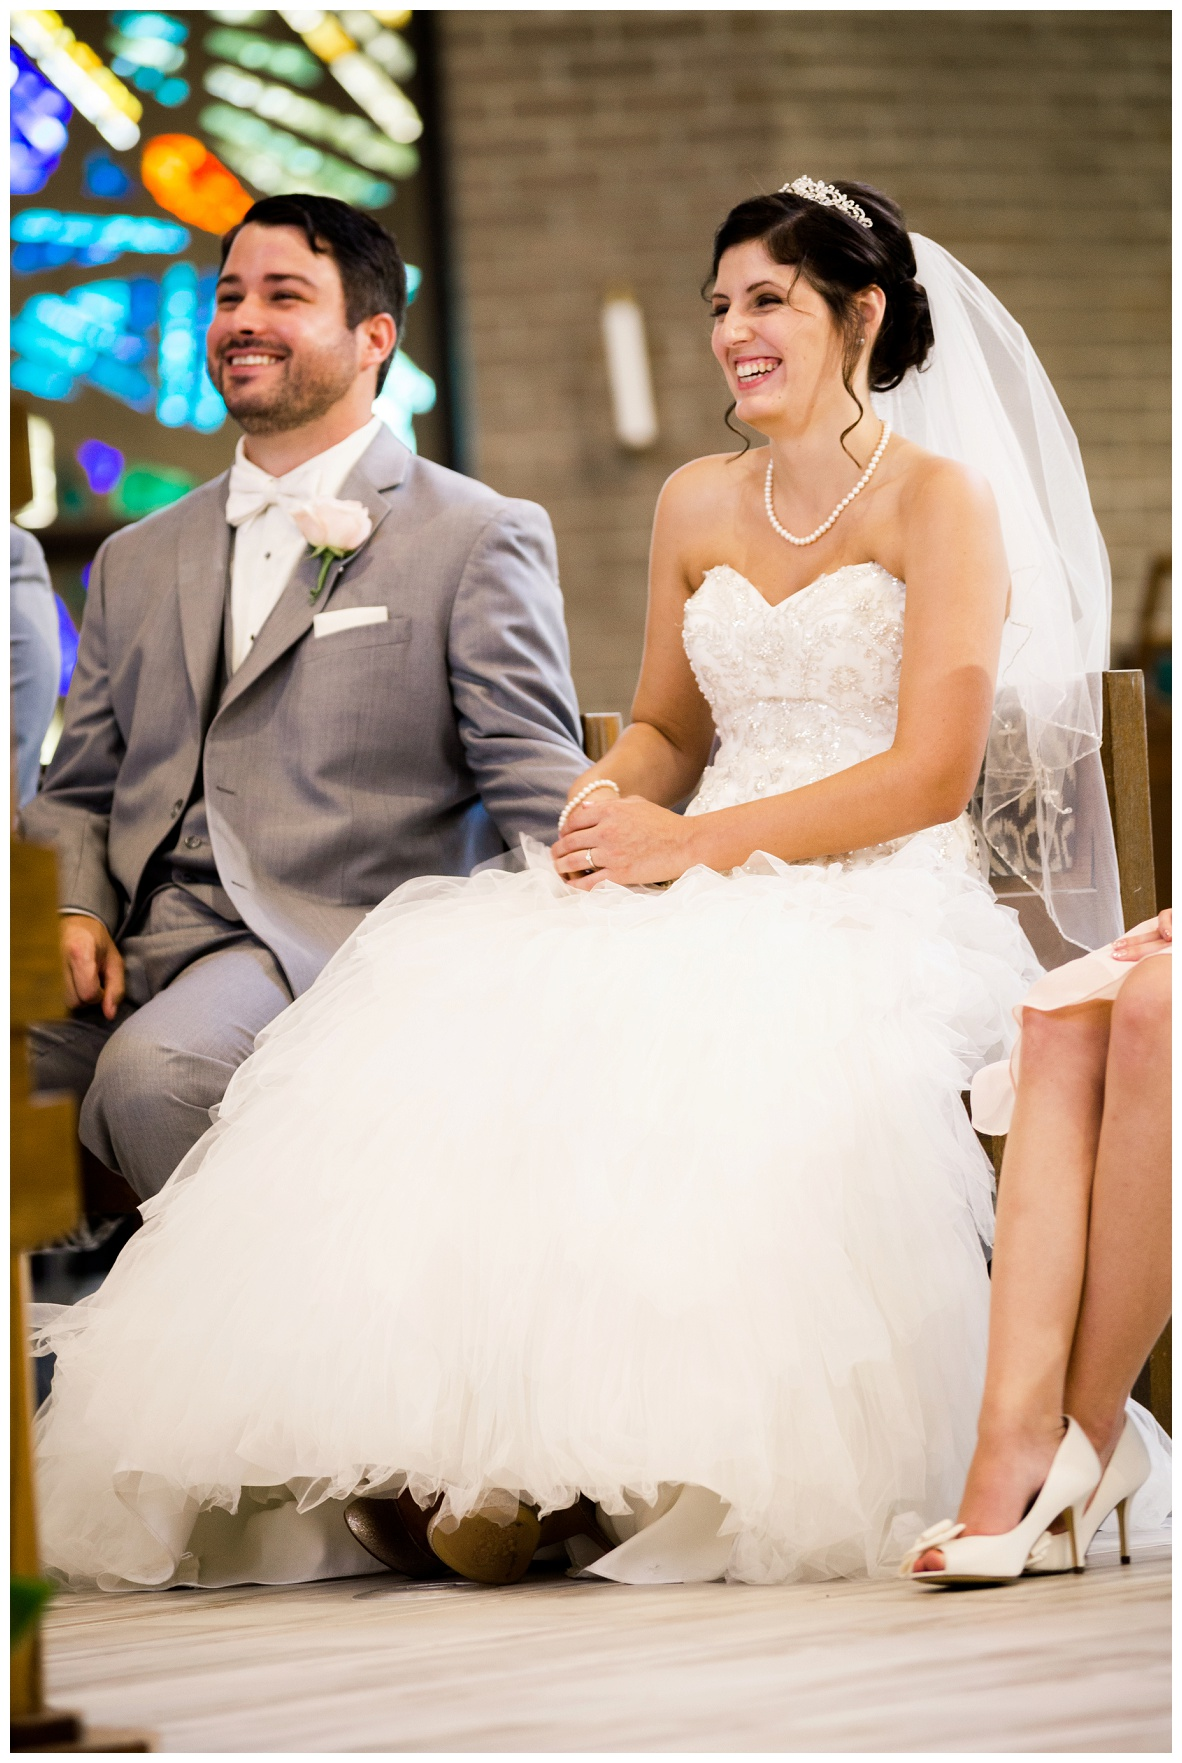 Mr. and Mrs. King_0016.jpg